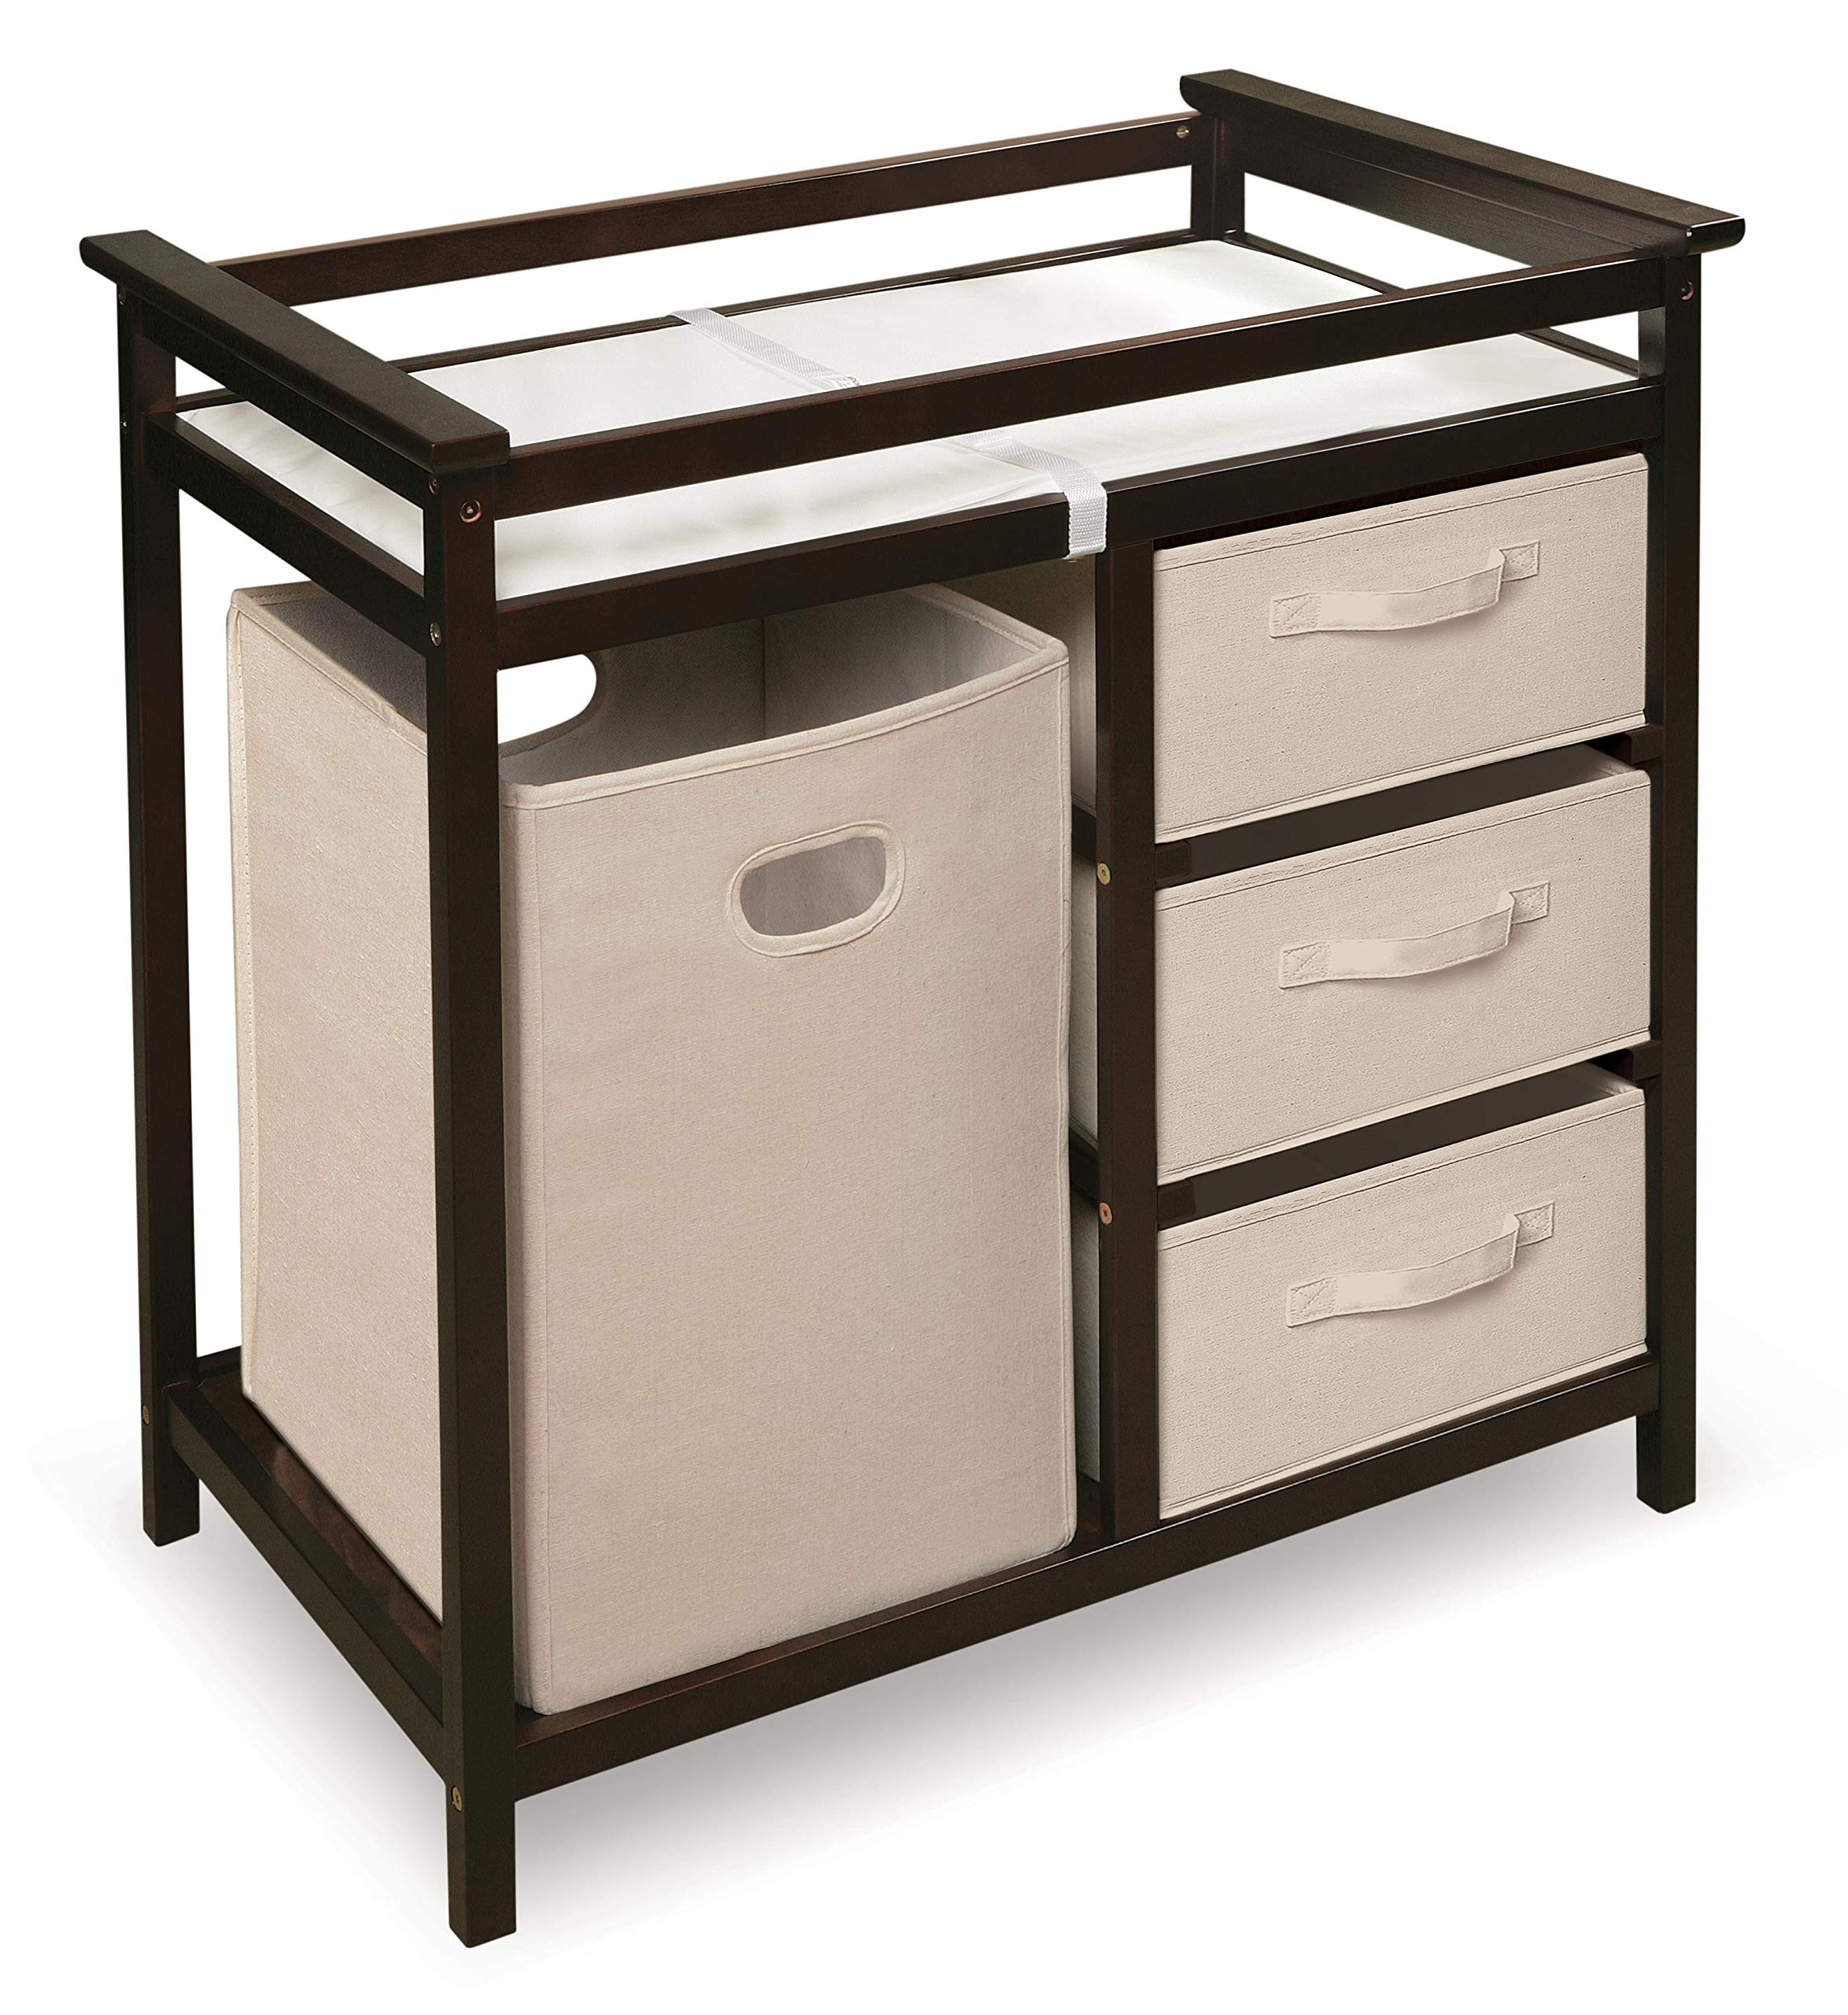 Modern Baby Changing Table with Laundry Hamper, 3 Storage Baskets, and Pad by Badger Basket